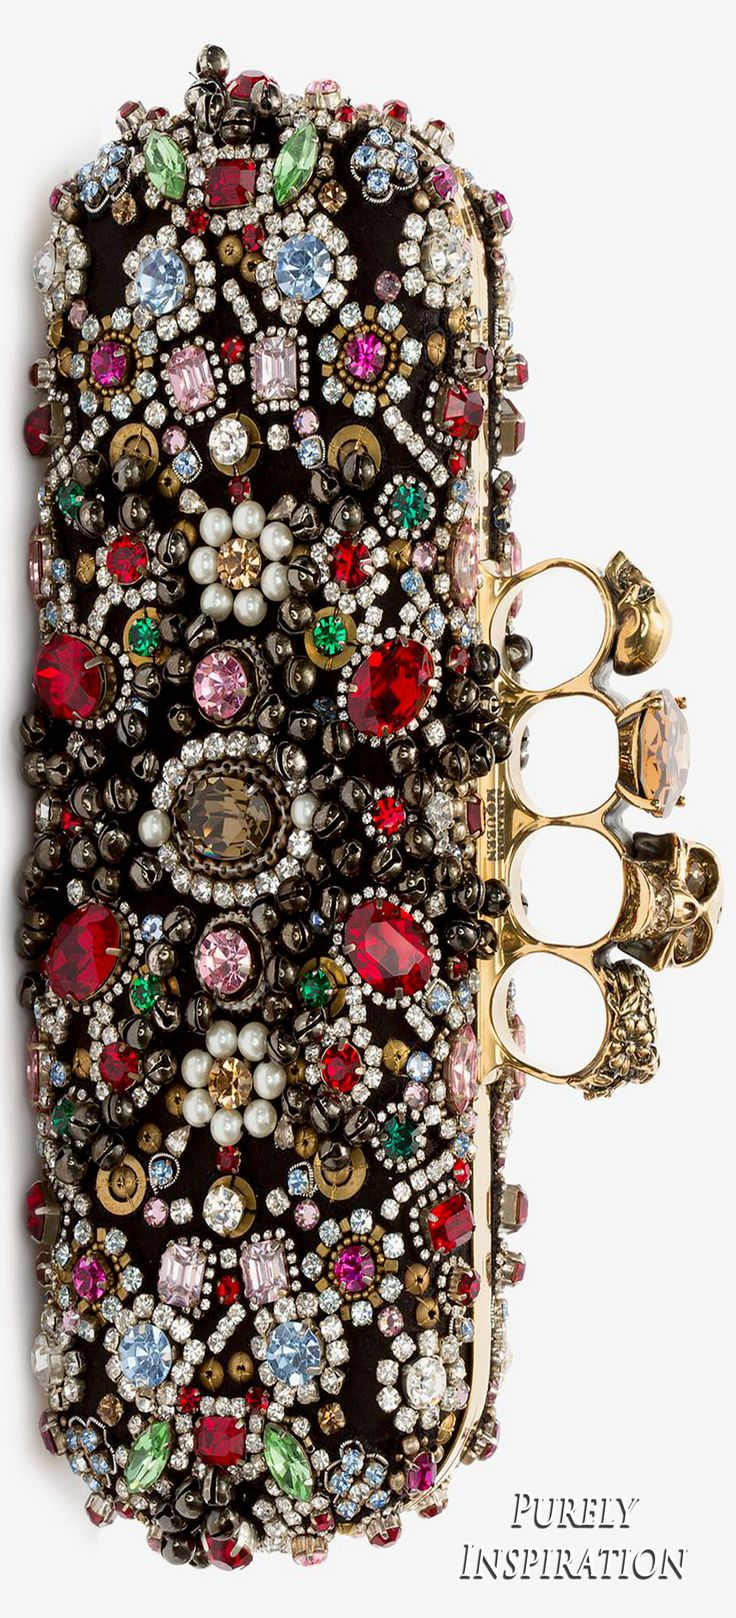 Alexander McQueen Jeweled Knuckle Box Clutch | Purely Inspiration Women's Handbags & Wallets - http://amzn.to/2iT2lOF